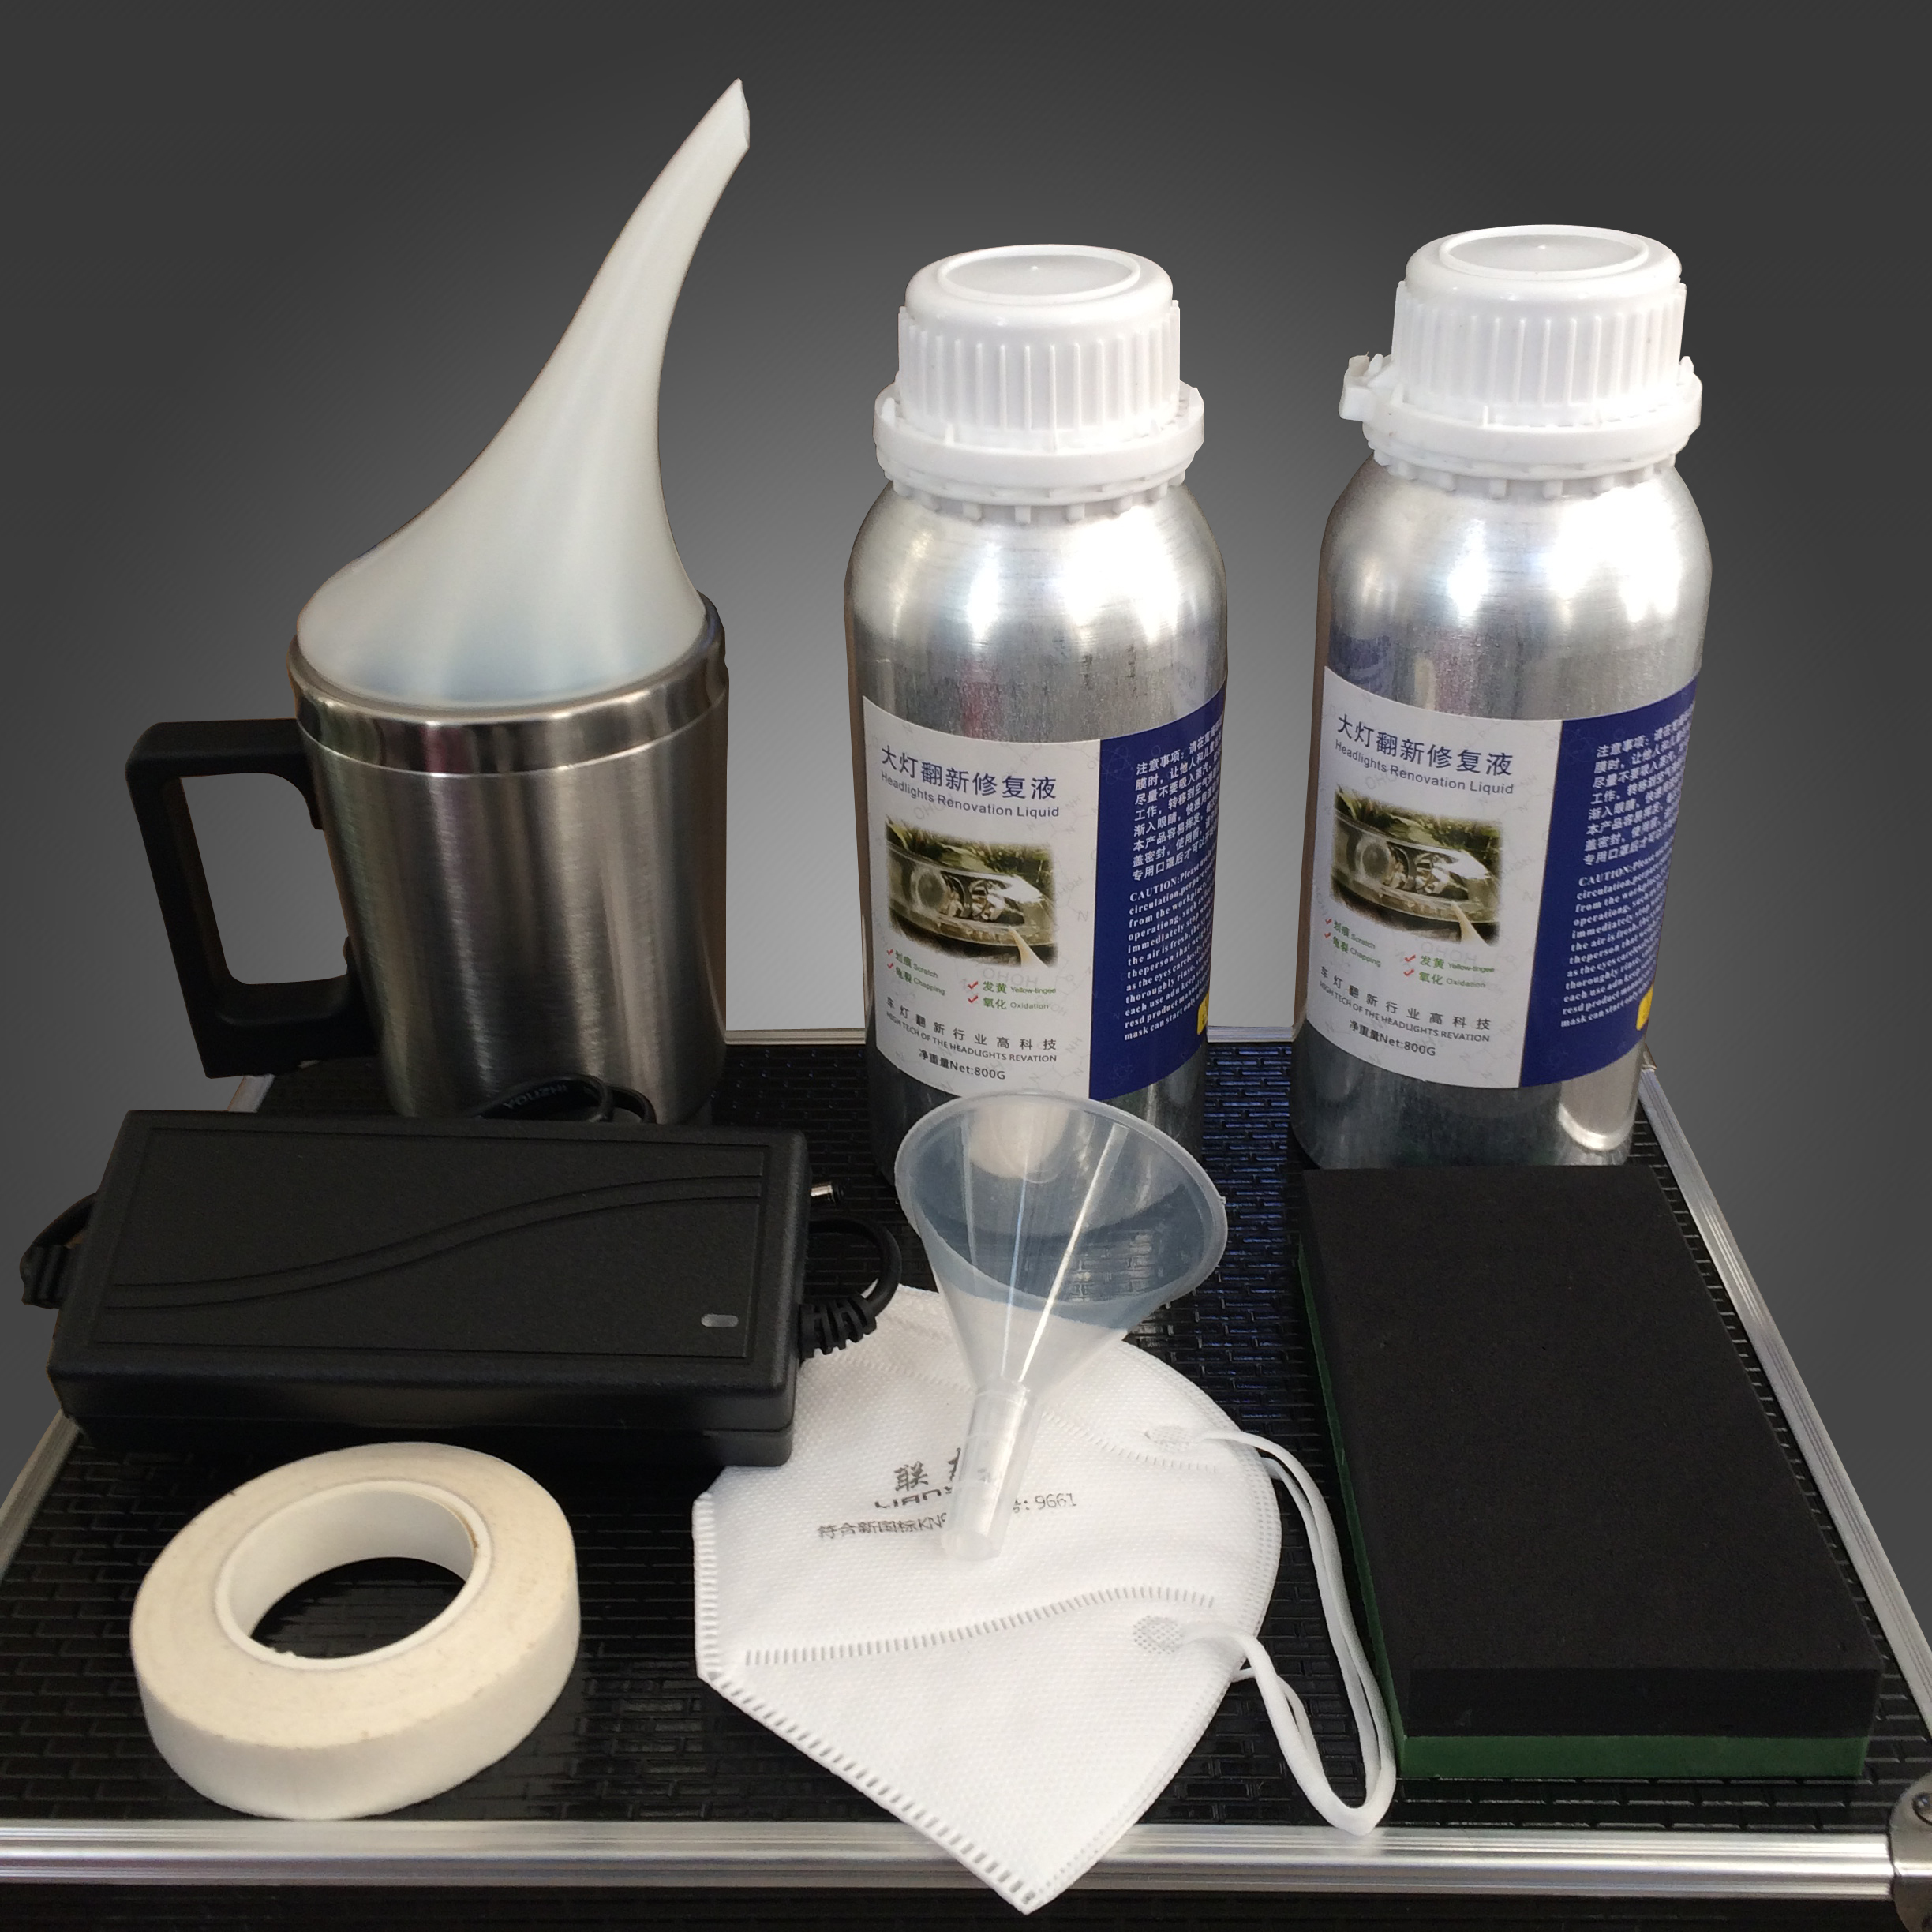 Car Headlights Renovation Repair Kit Coating Refurbishment Liquid